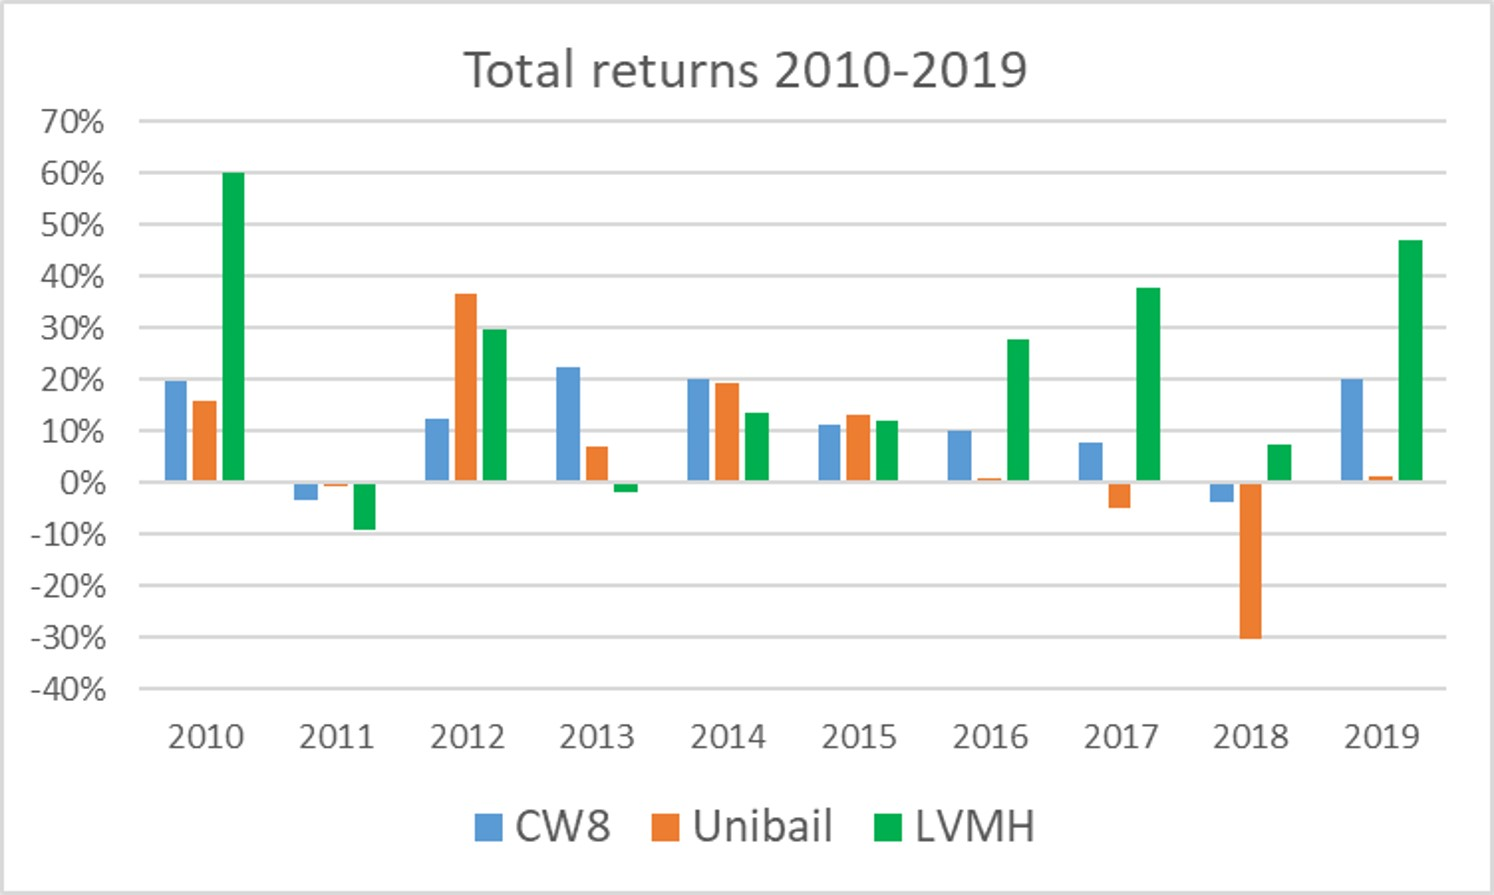 https://www.devenir-rentier.fr/uploads/12850_2019-09-11_total_returns_2010-2019.jpg